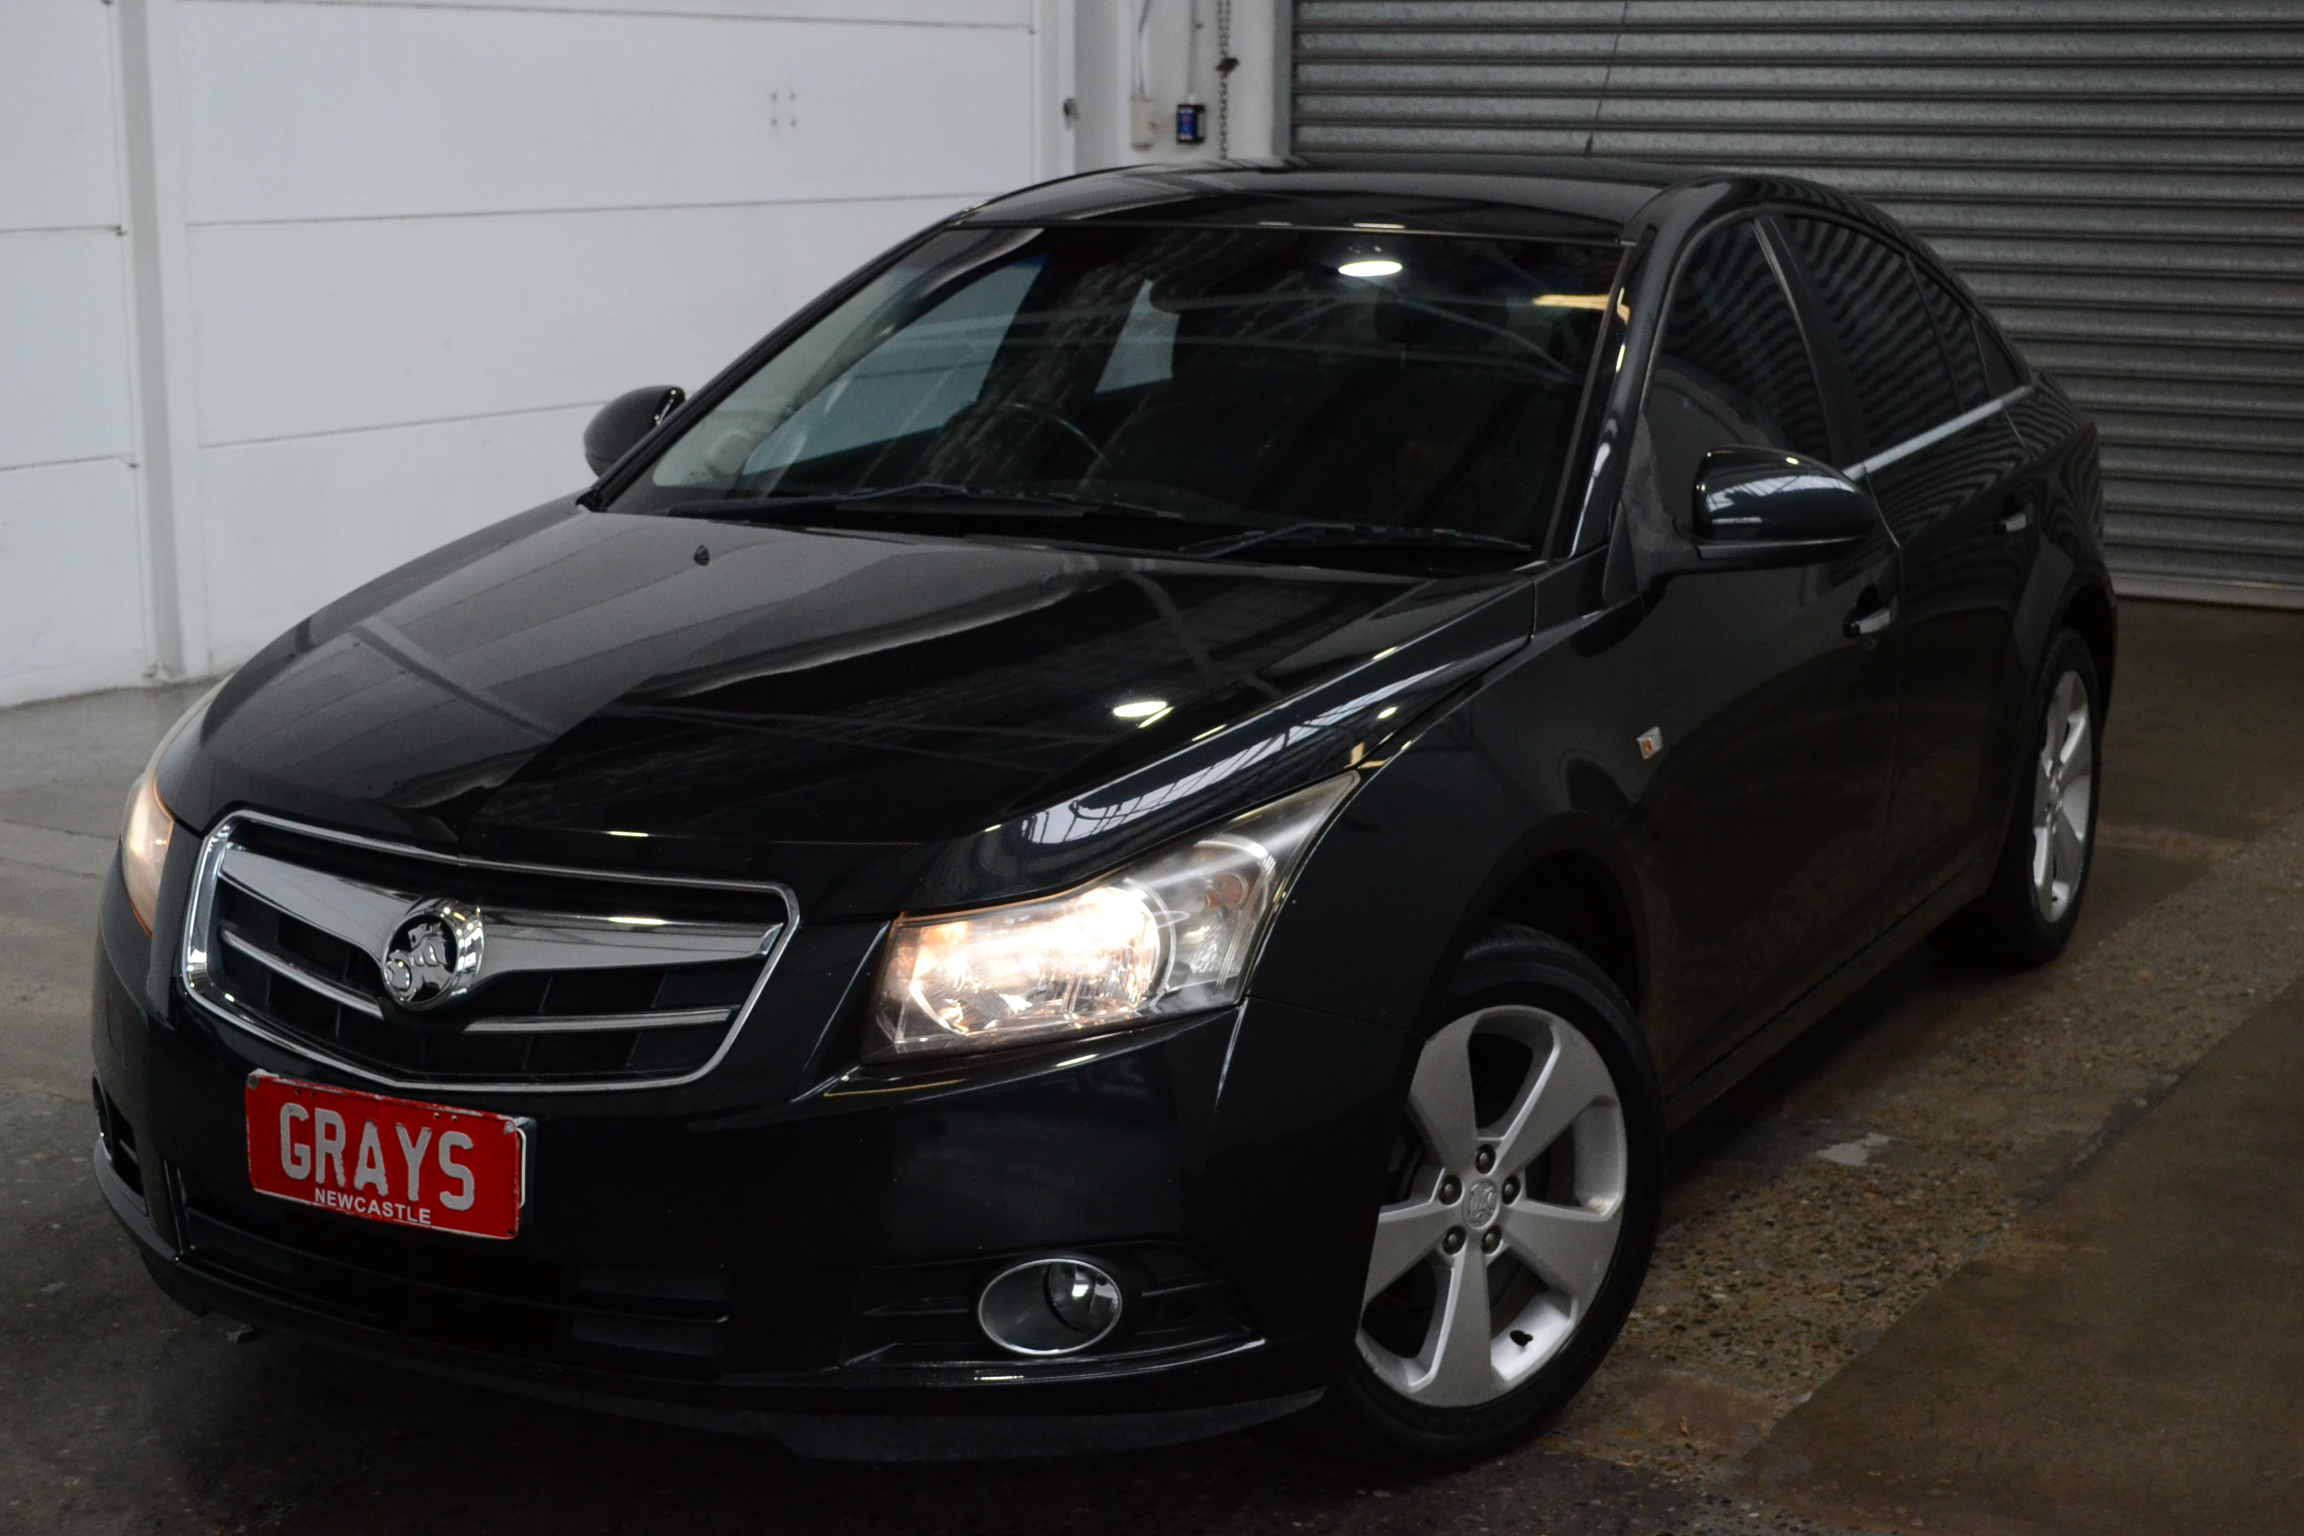 2010 Holden Cruze CDX JG Manual Sedan